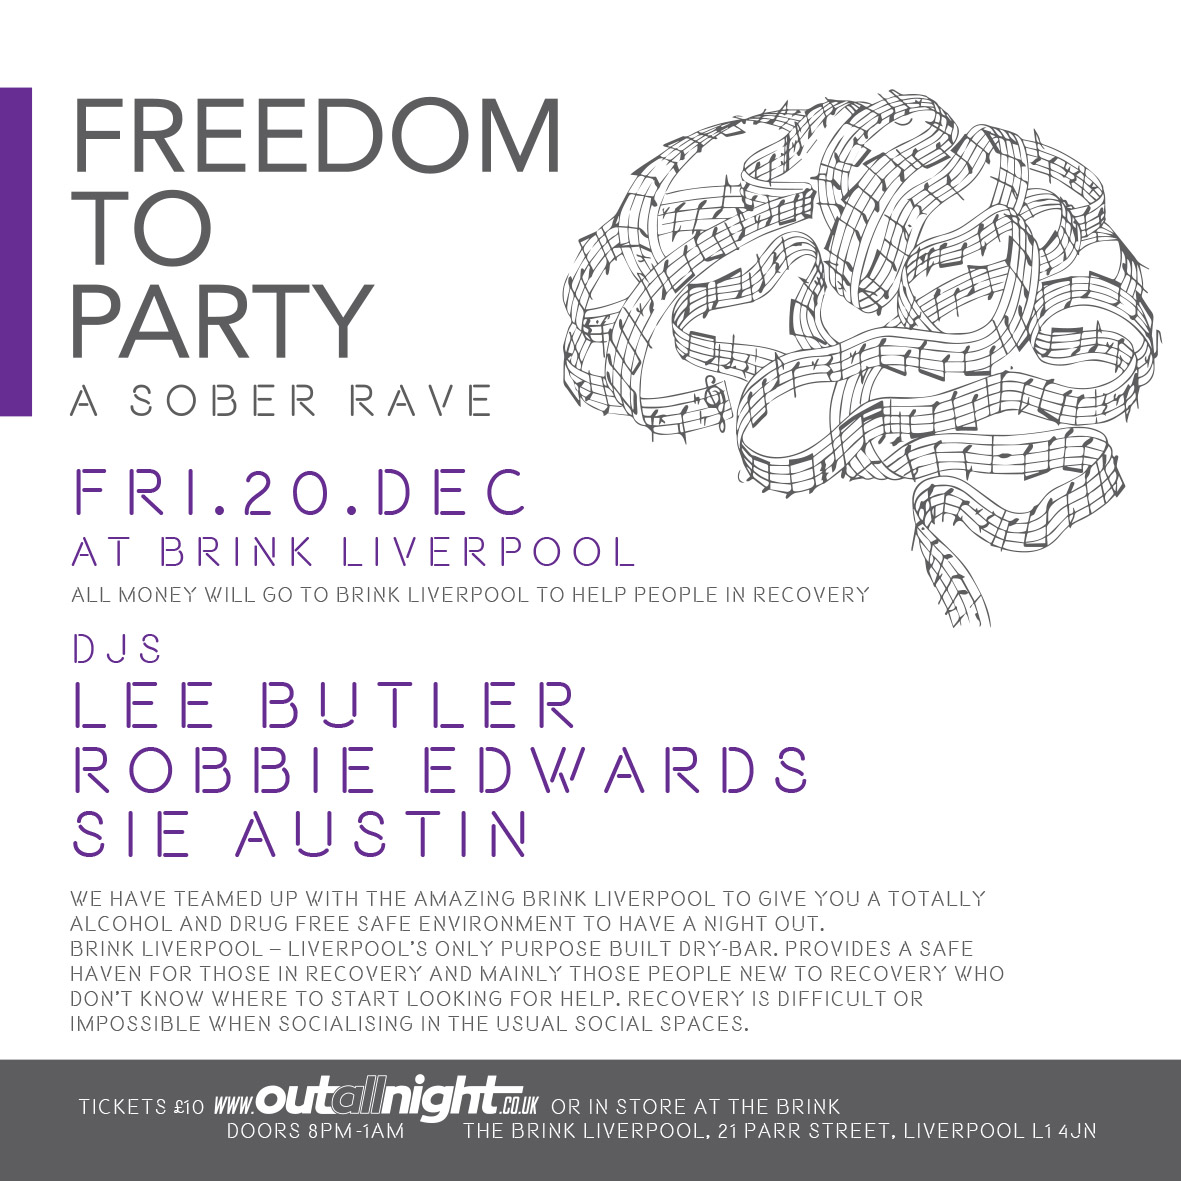 #SUNDAYSUPPORT #RECOVERY FREEDOM TO PARTY - A Sober Rave 💖 Friday 20th Dec at @BrinkLiverpool - Lpools only dry bar ALL MONEY WILL GO TO BRINK LIVERPOOL TO HELP PEOPLE IN RECOVERY Tkts on sale tomorrow and are £10 online at outallnight.co.uk or in store at The Brink